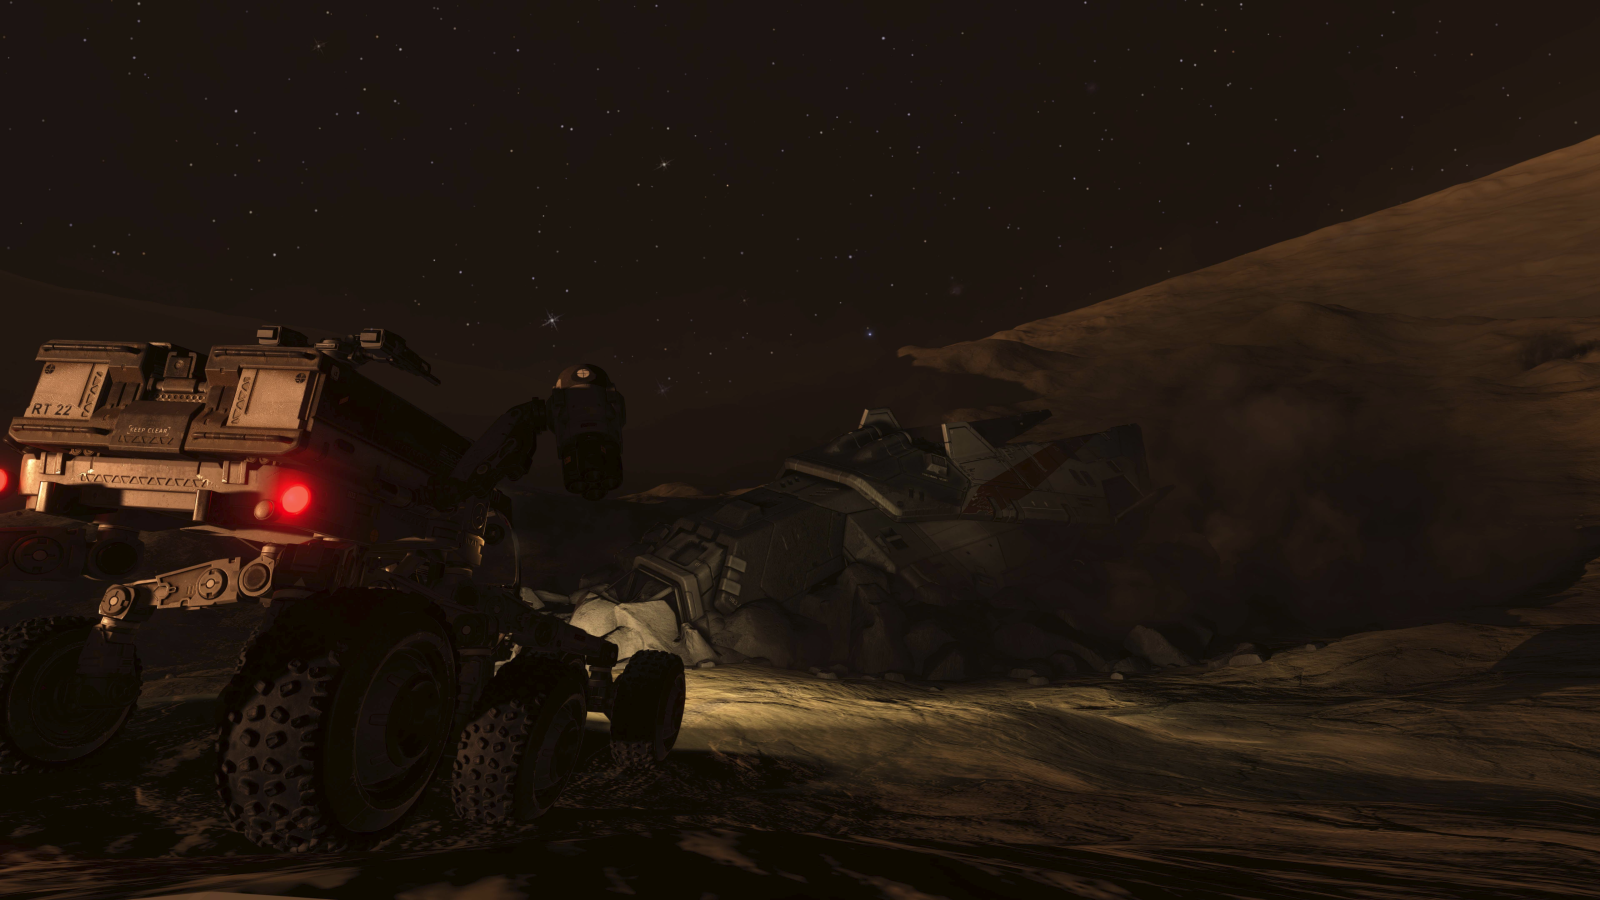 Elite Dangerous: Horizons Launches for Xbox One on June 3